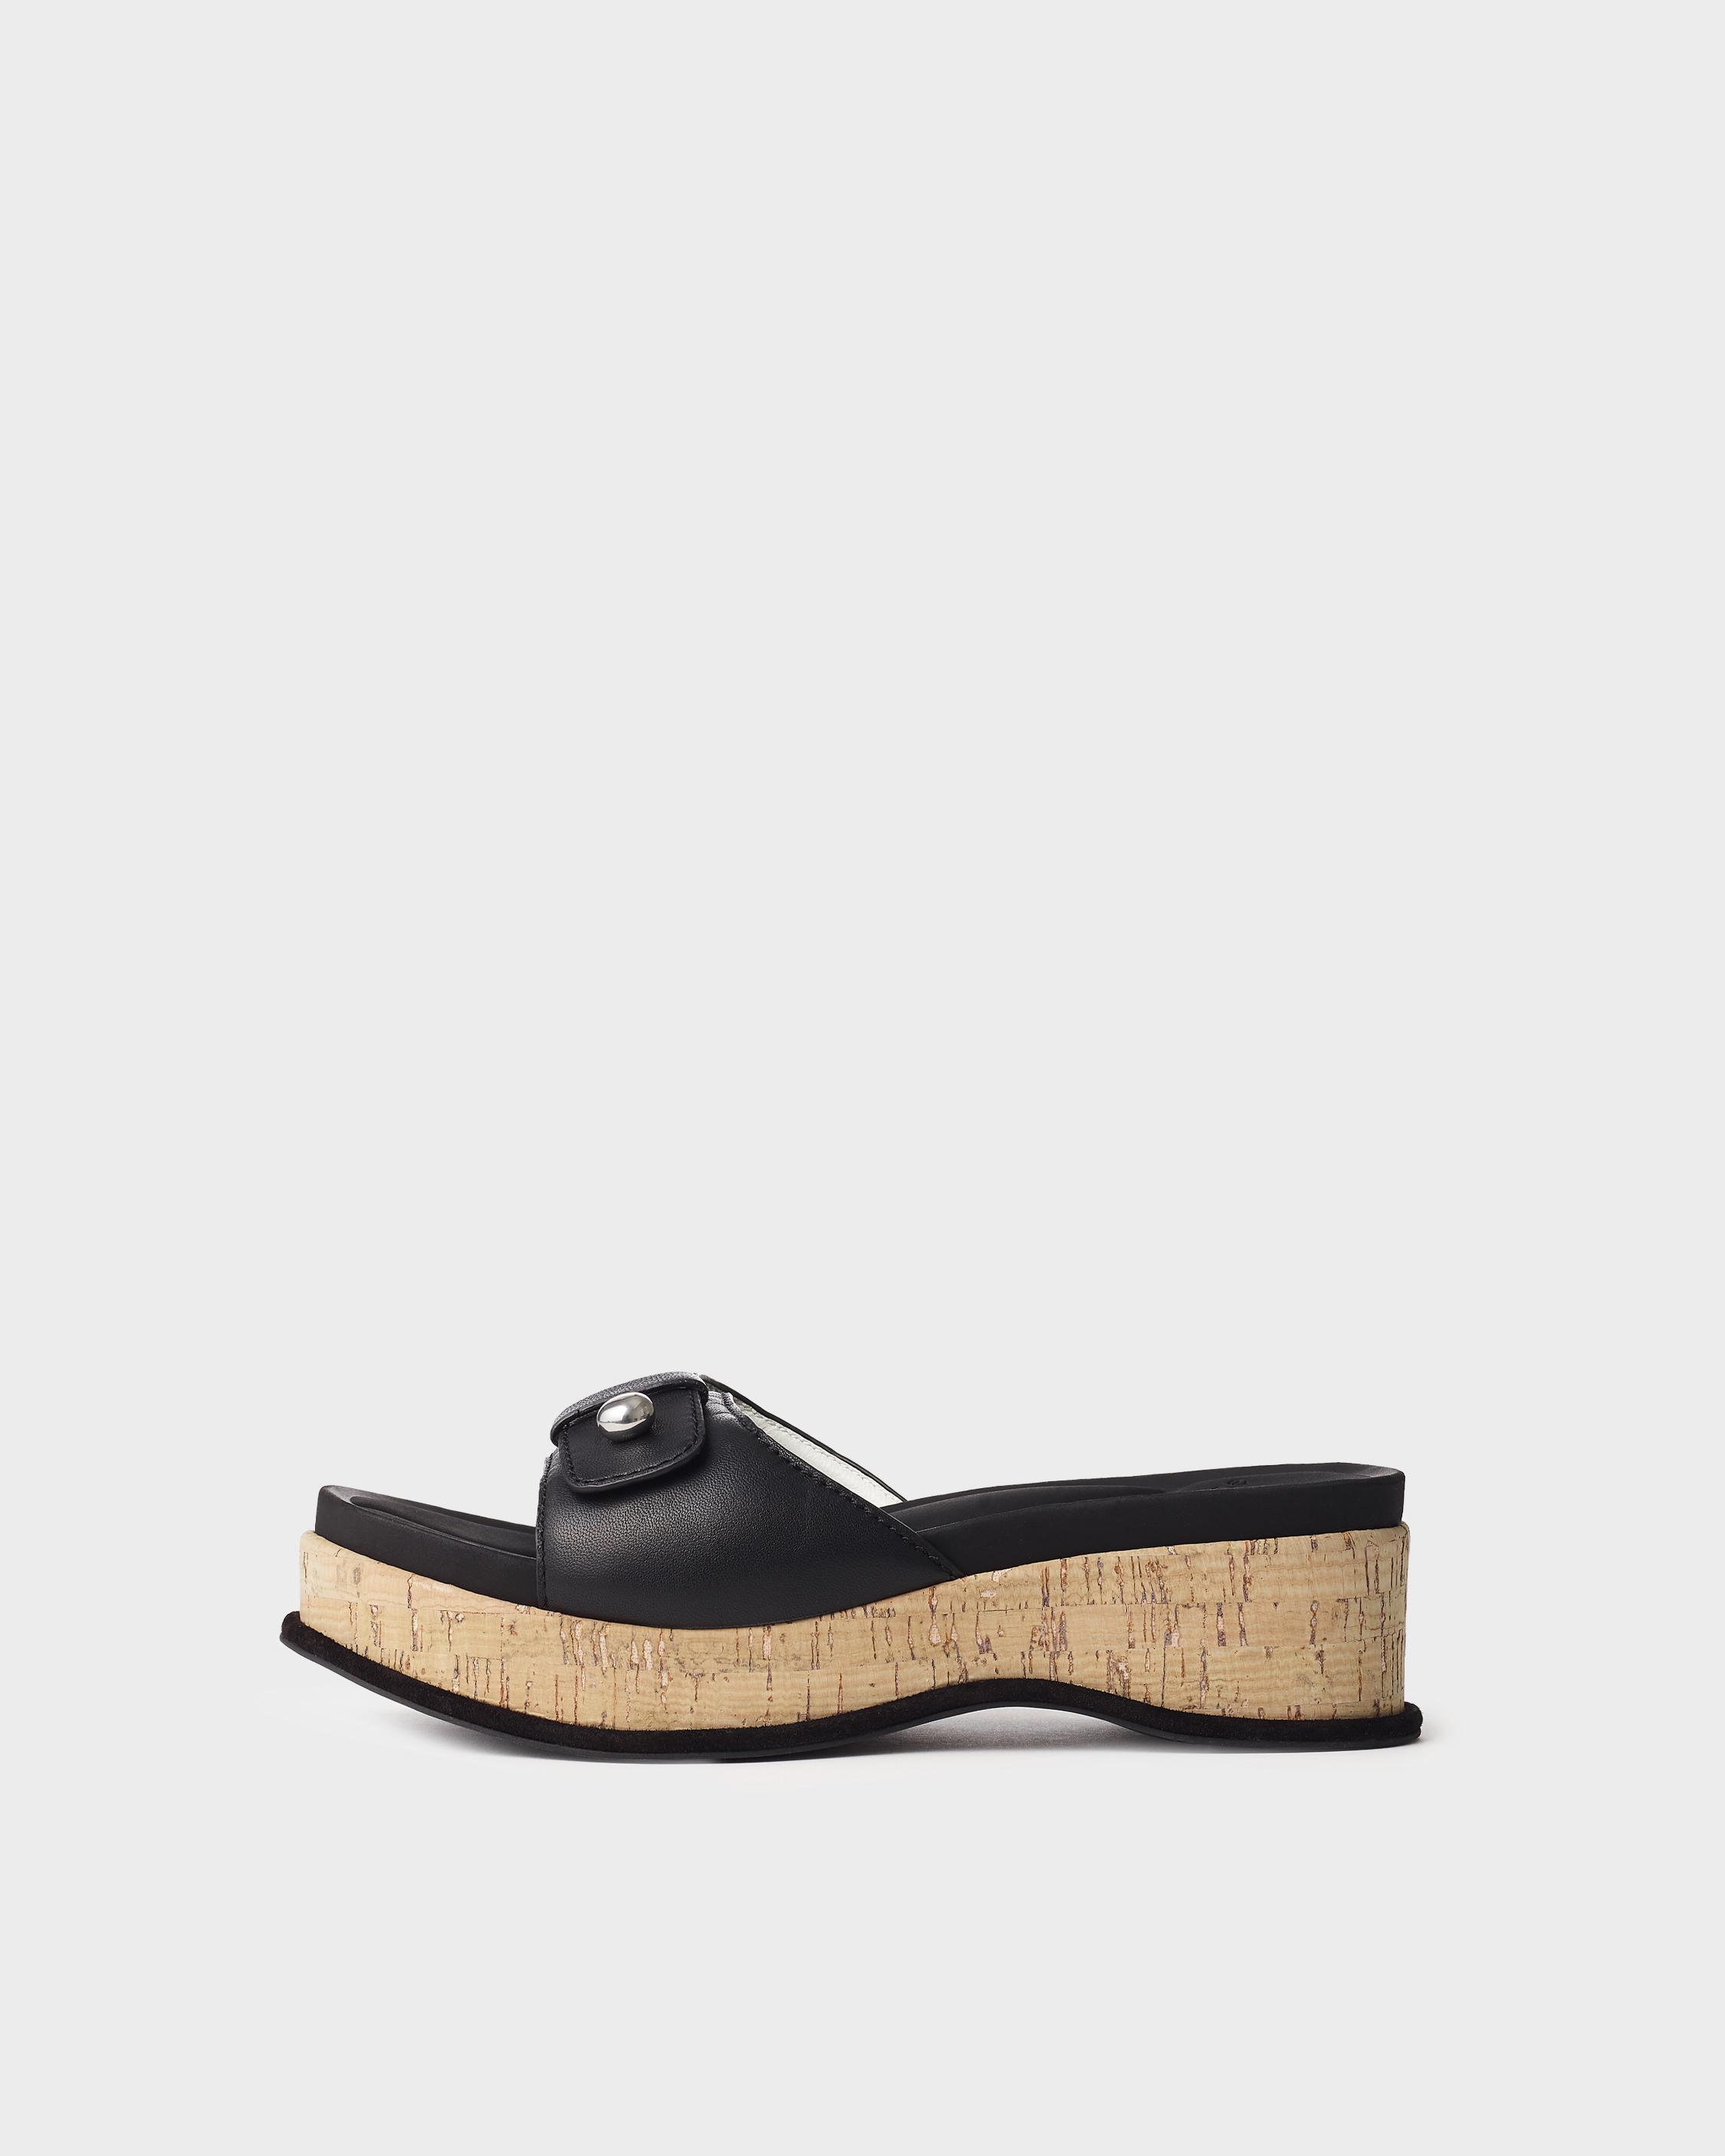 Sommer wedge - leather